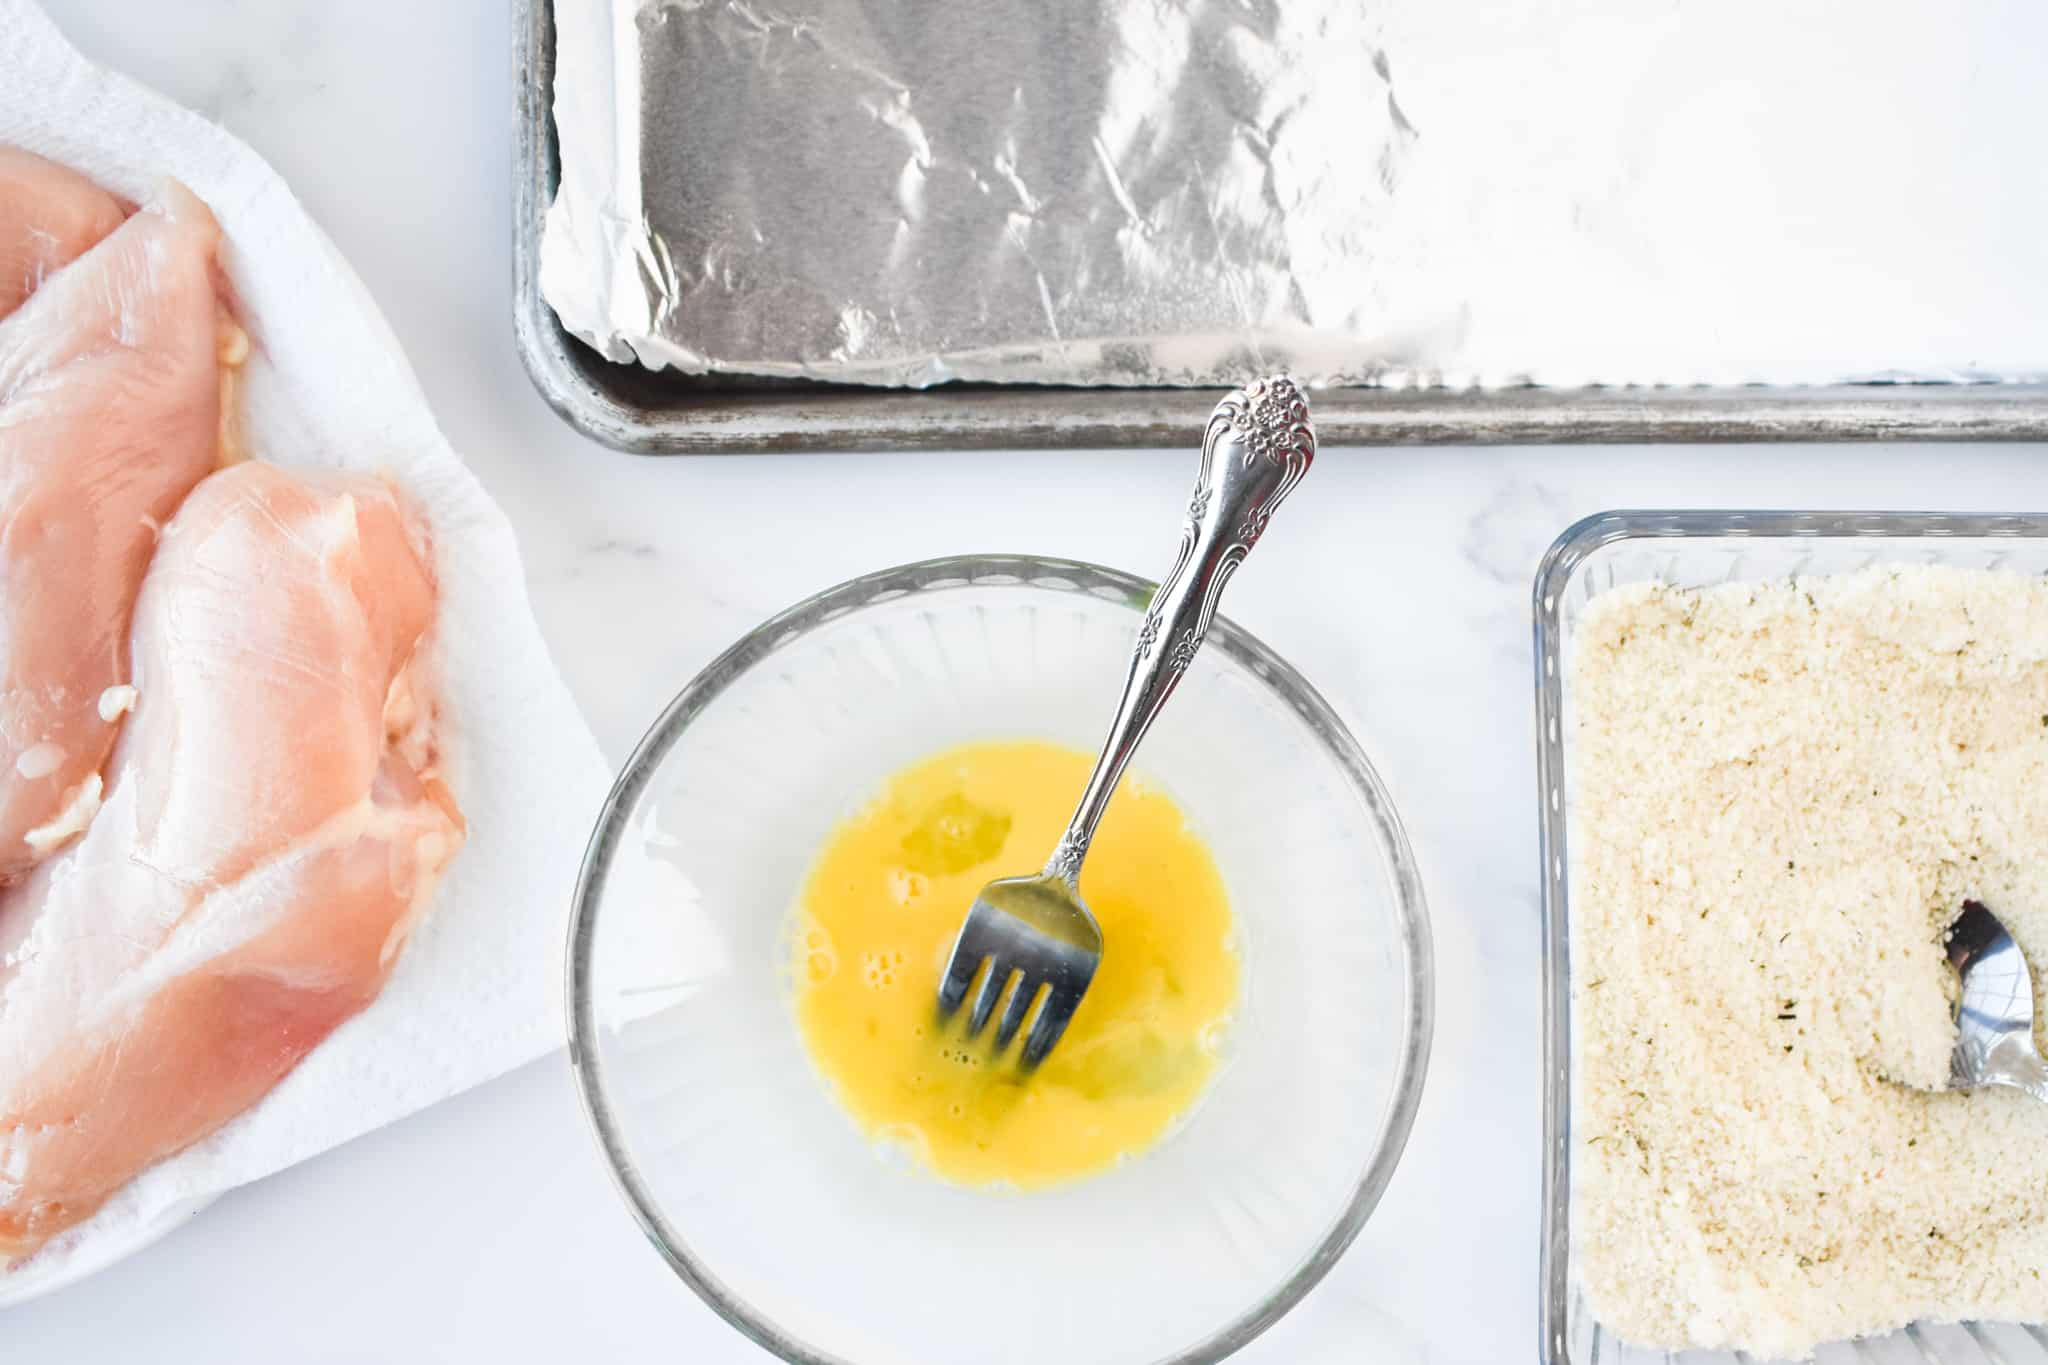 chicken breasts, sheet pan, egg yolk and panko bread crumbs in a dish.